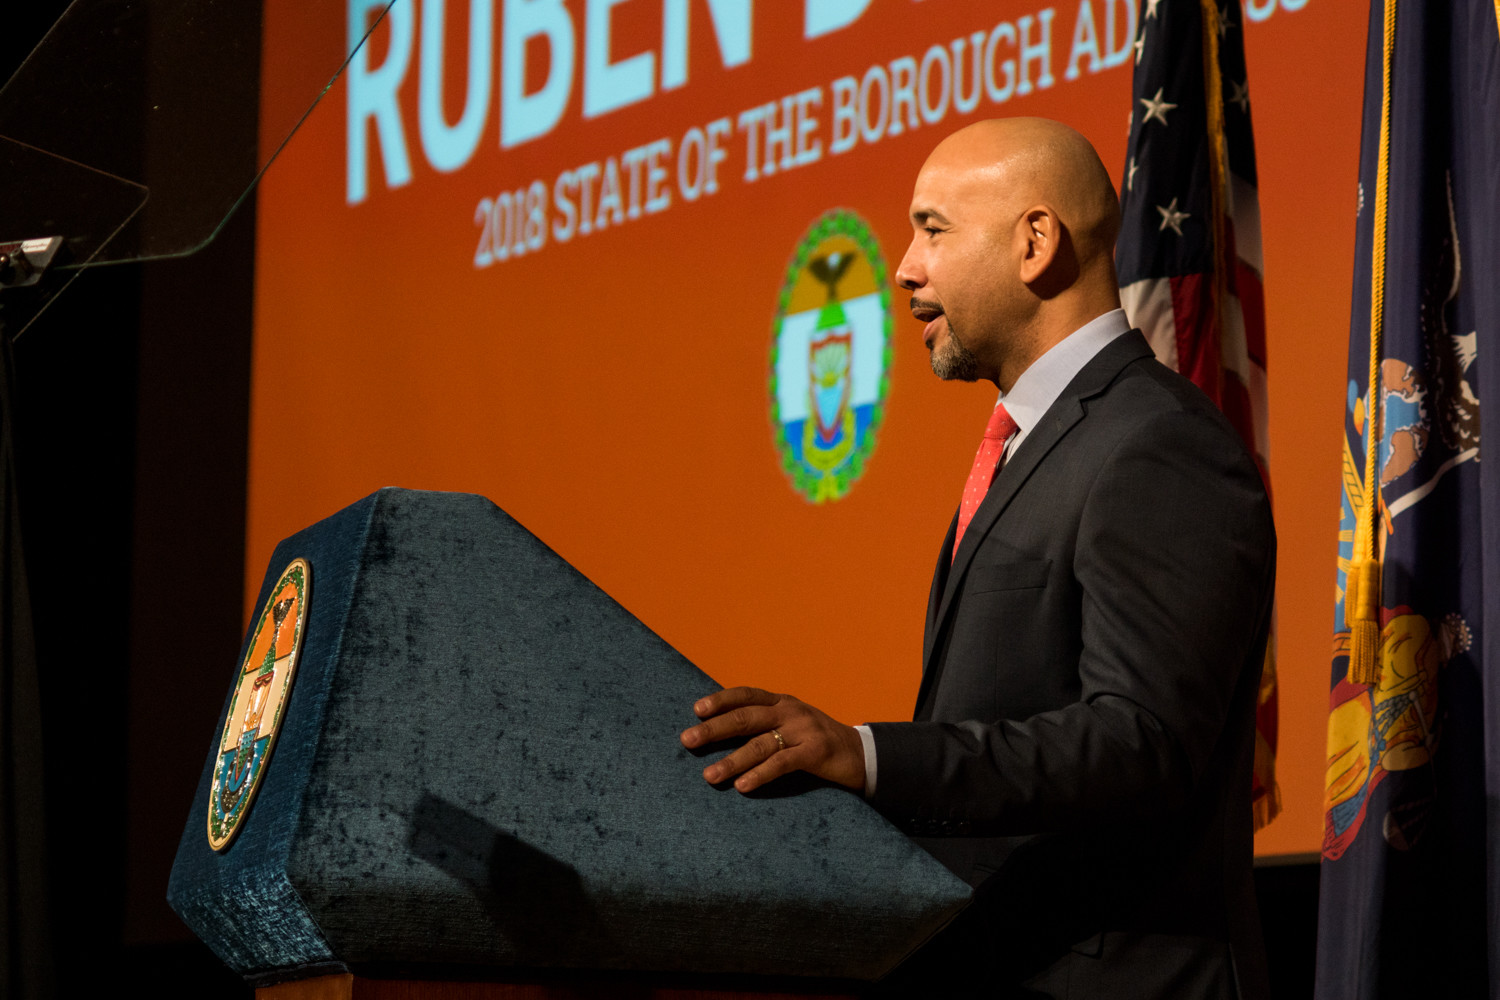 Bronx borough president Ruben Diaz Jr., talks about the strides the borough has made in the last year. One bright spot is the growing economy, with unemployment cut in half, plummeting to 5.5 percent, and more than 110,000 people finding jobs since Diaz took office in 2009.